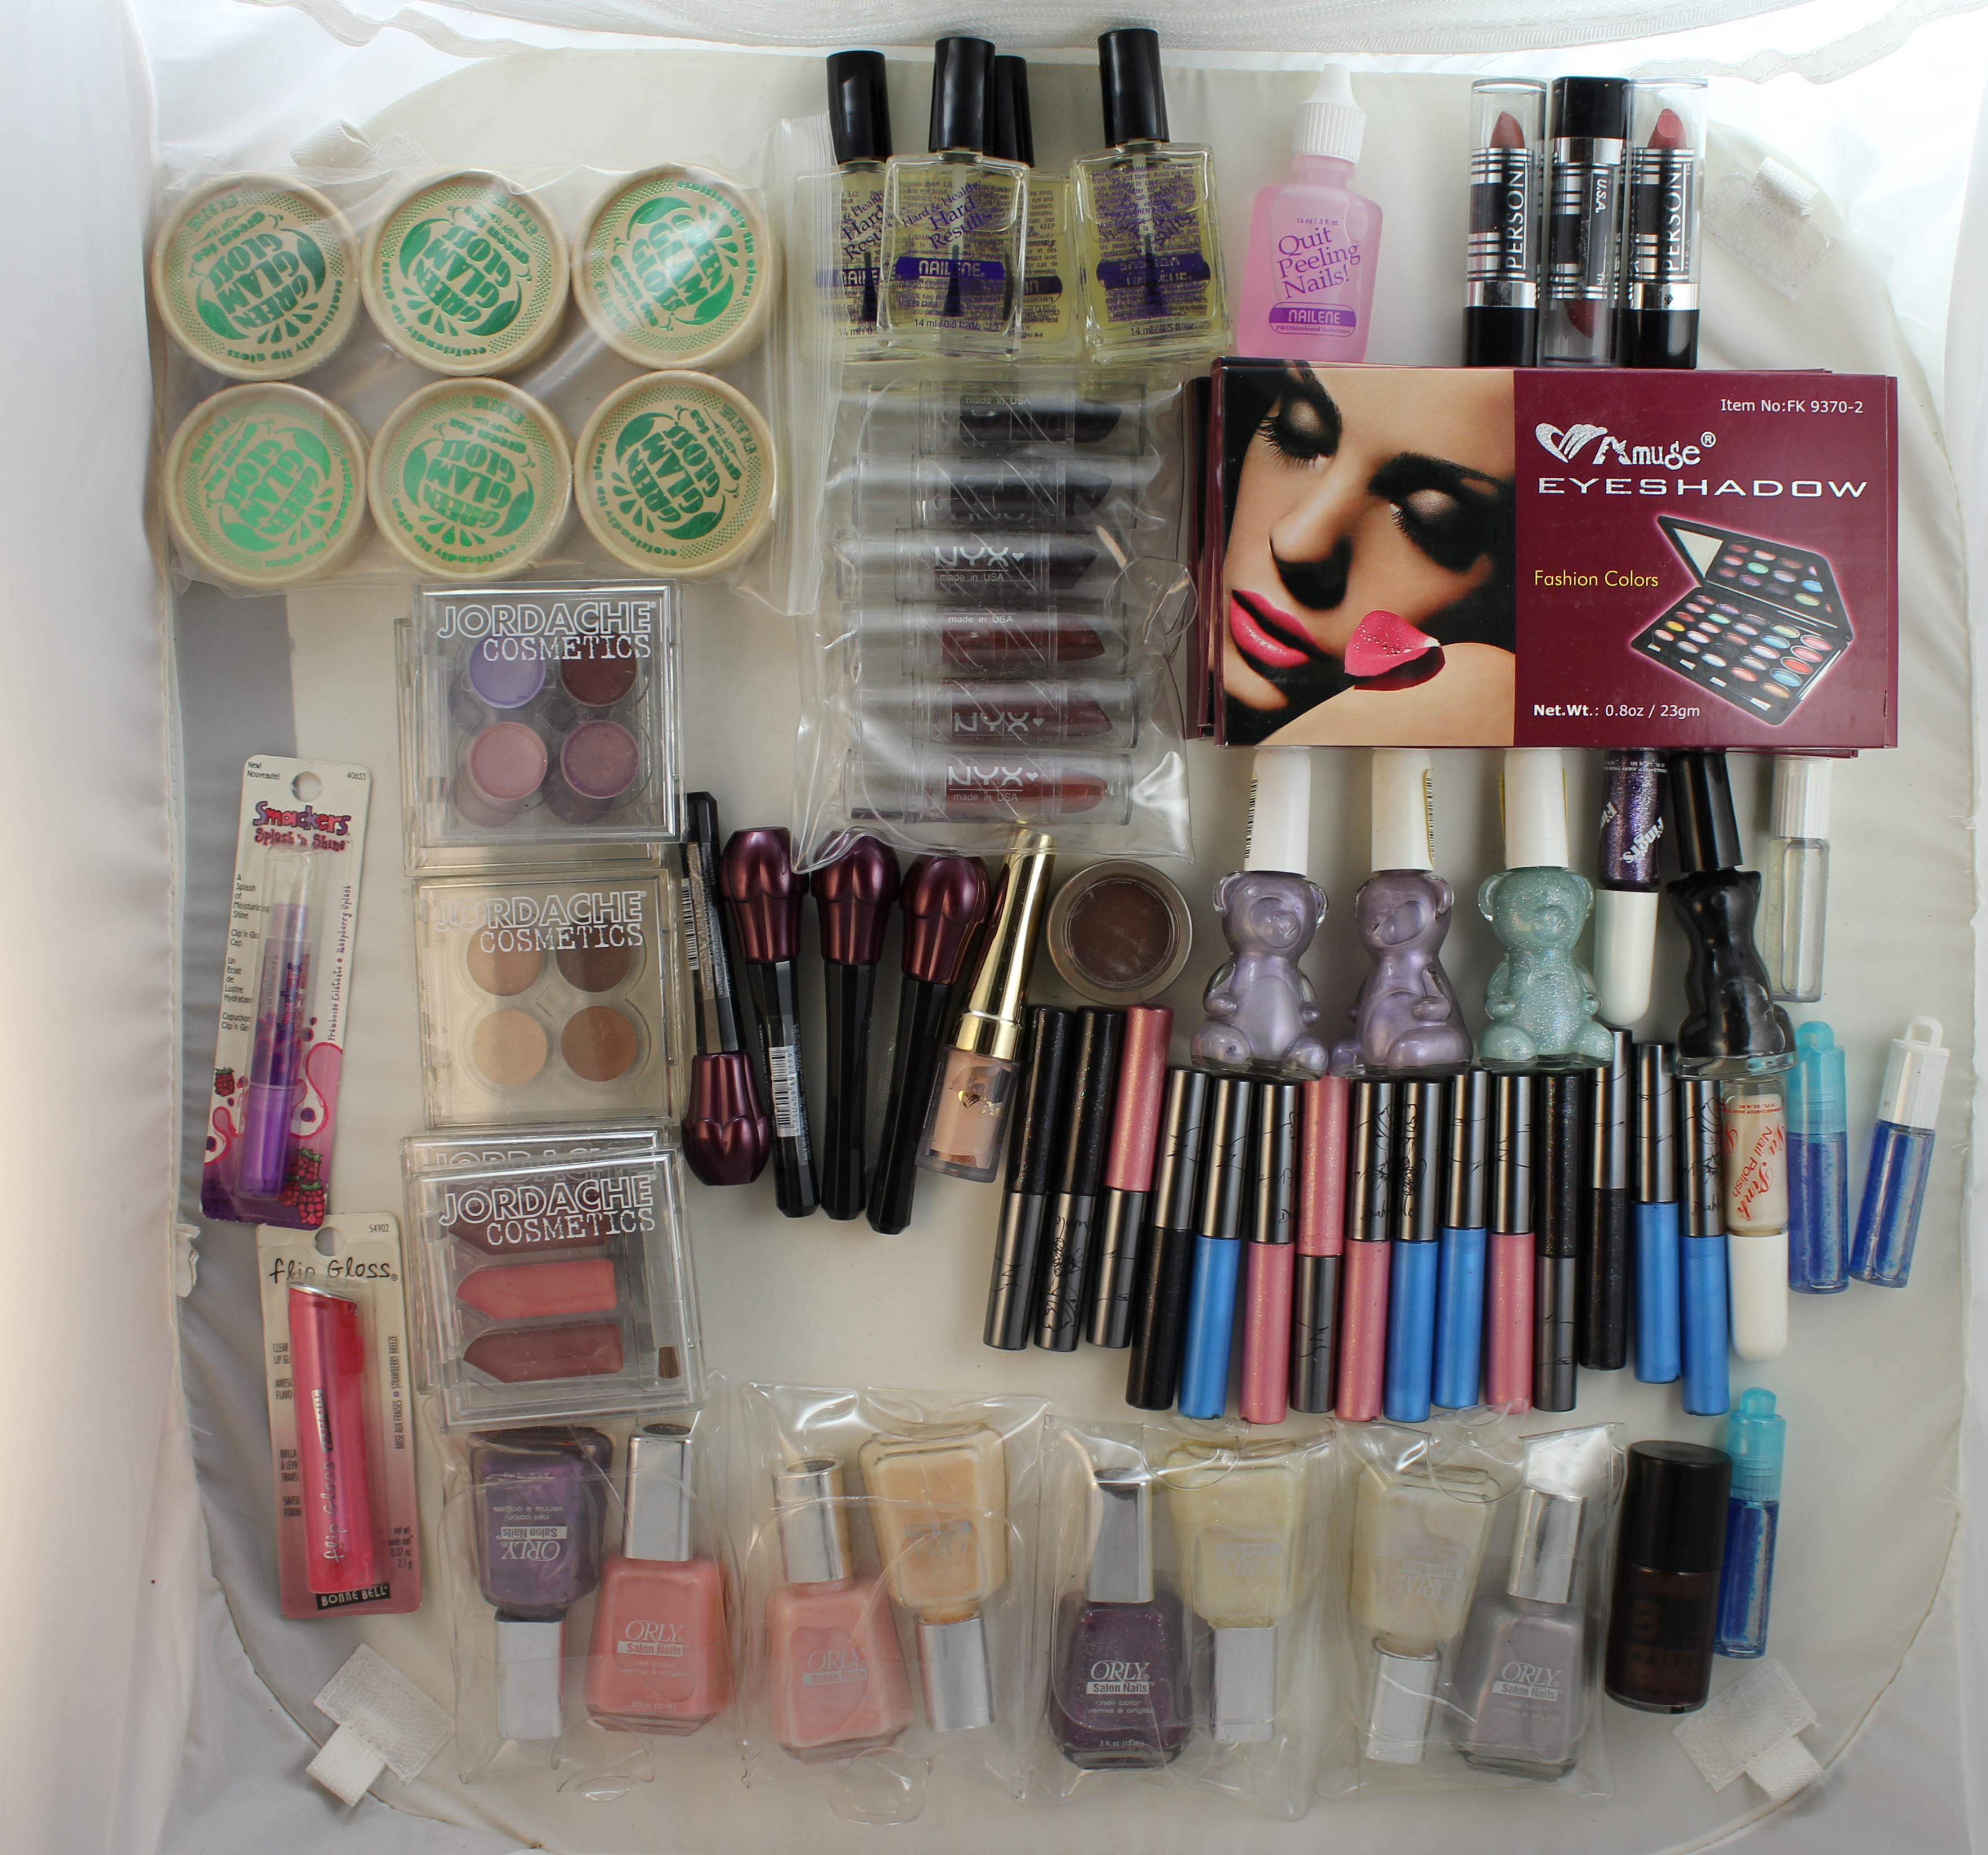 Brand Name cosmetics makeup mix whole sale bulk lot (50 piece minimum